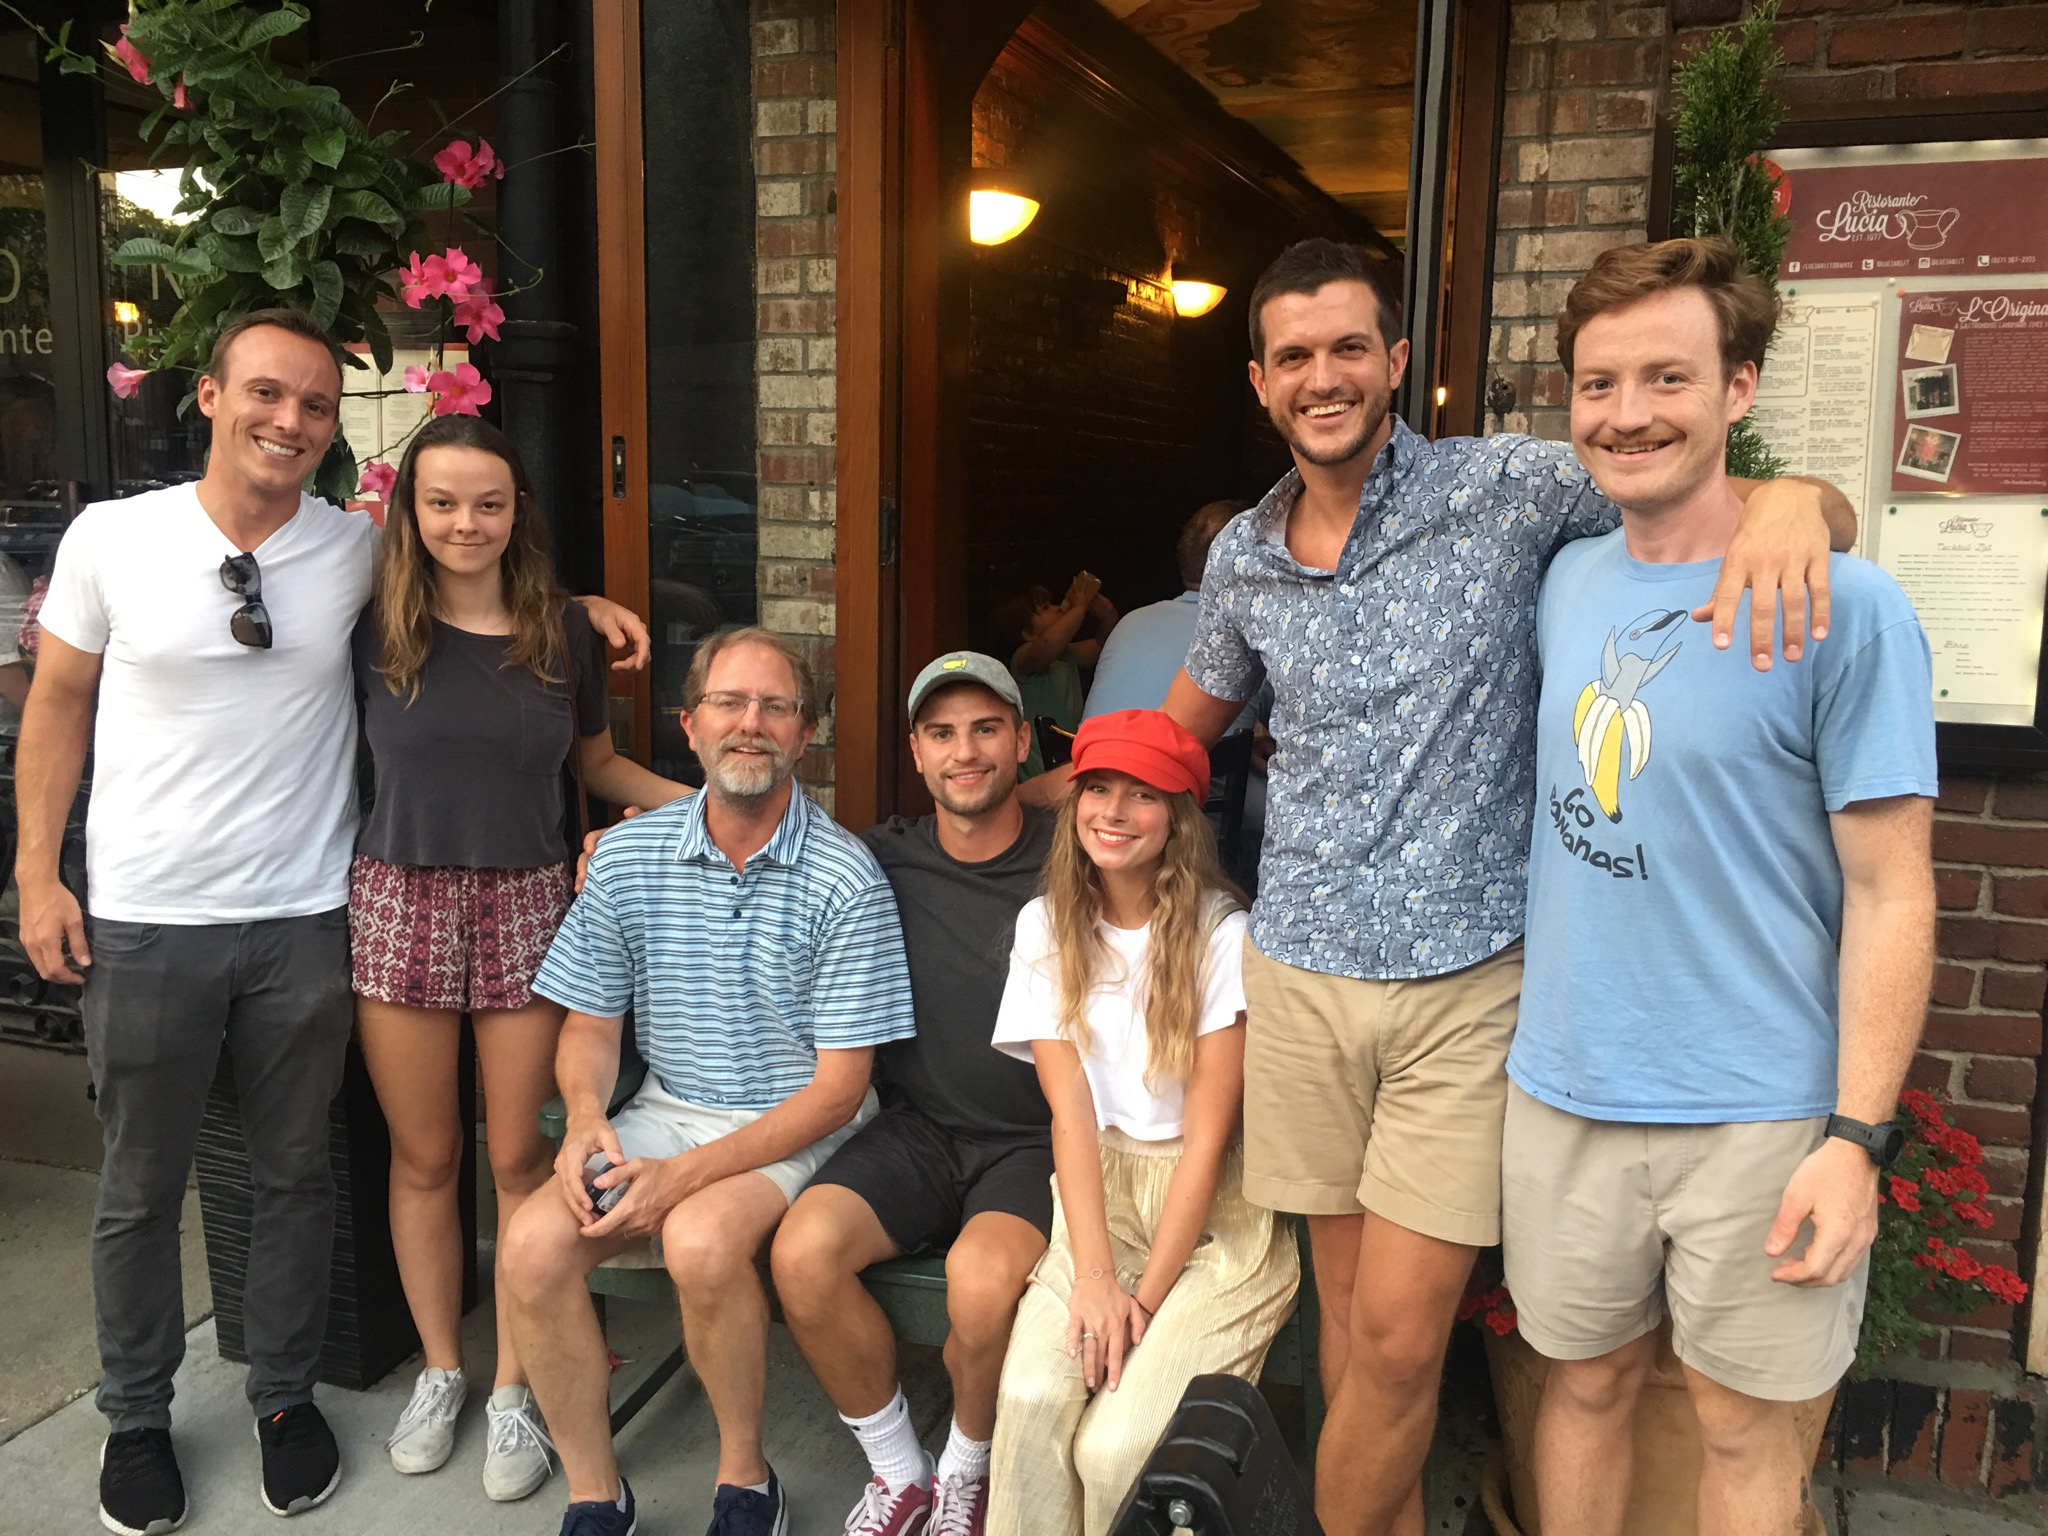 Wood Marchant and some of his students at the Association of Recovery in Higher Education Conference in Boston this Summer 2019